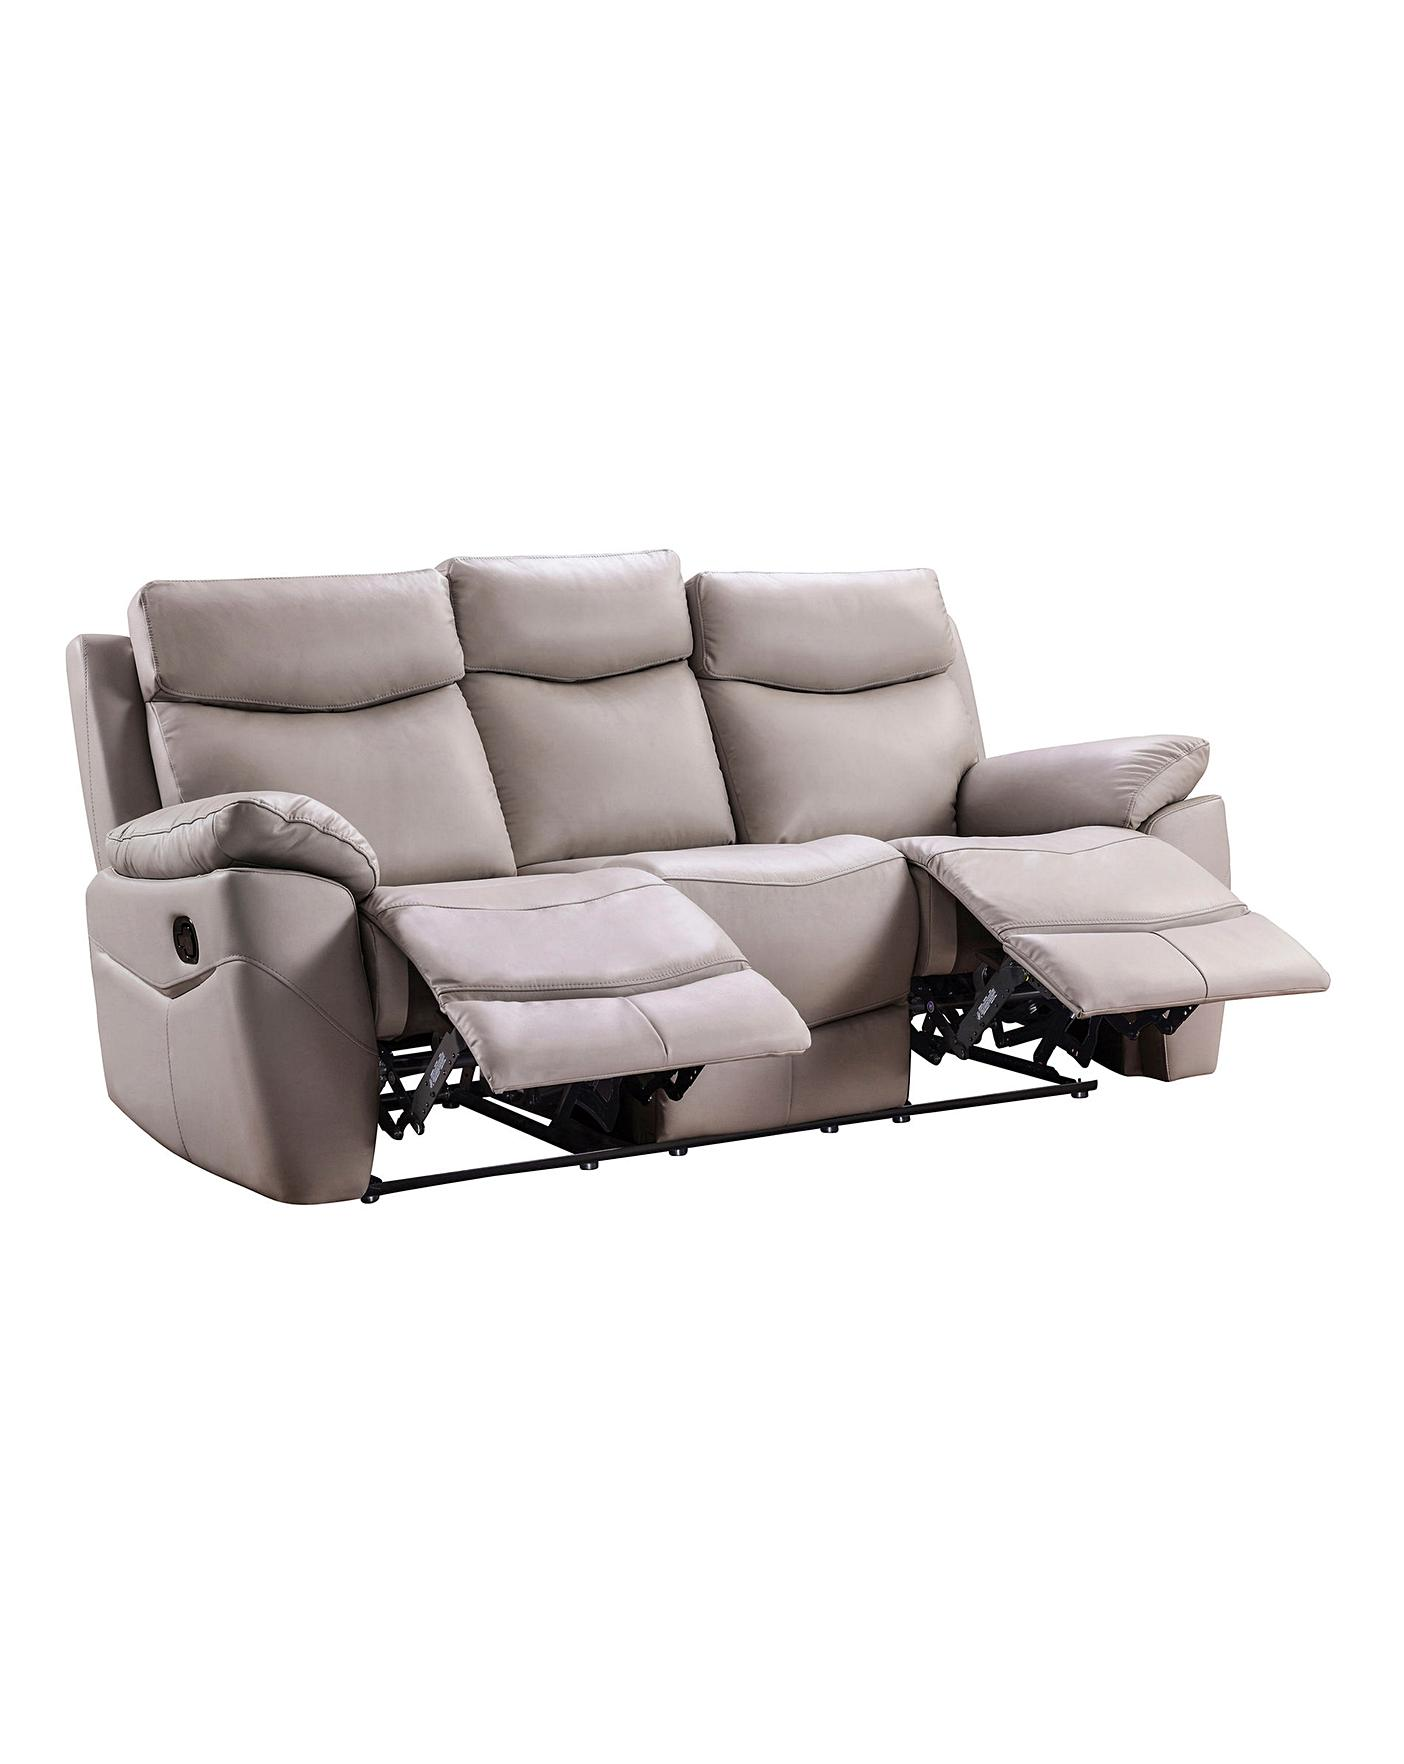 Marley Leather 3 Seater Recliner Sofa J D Williams